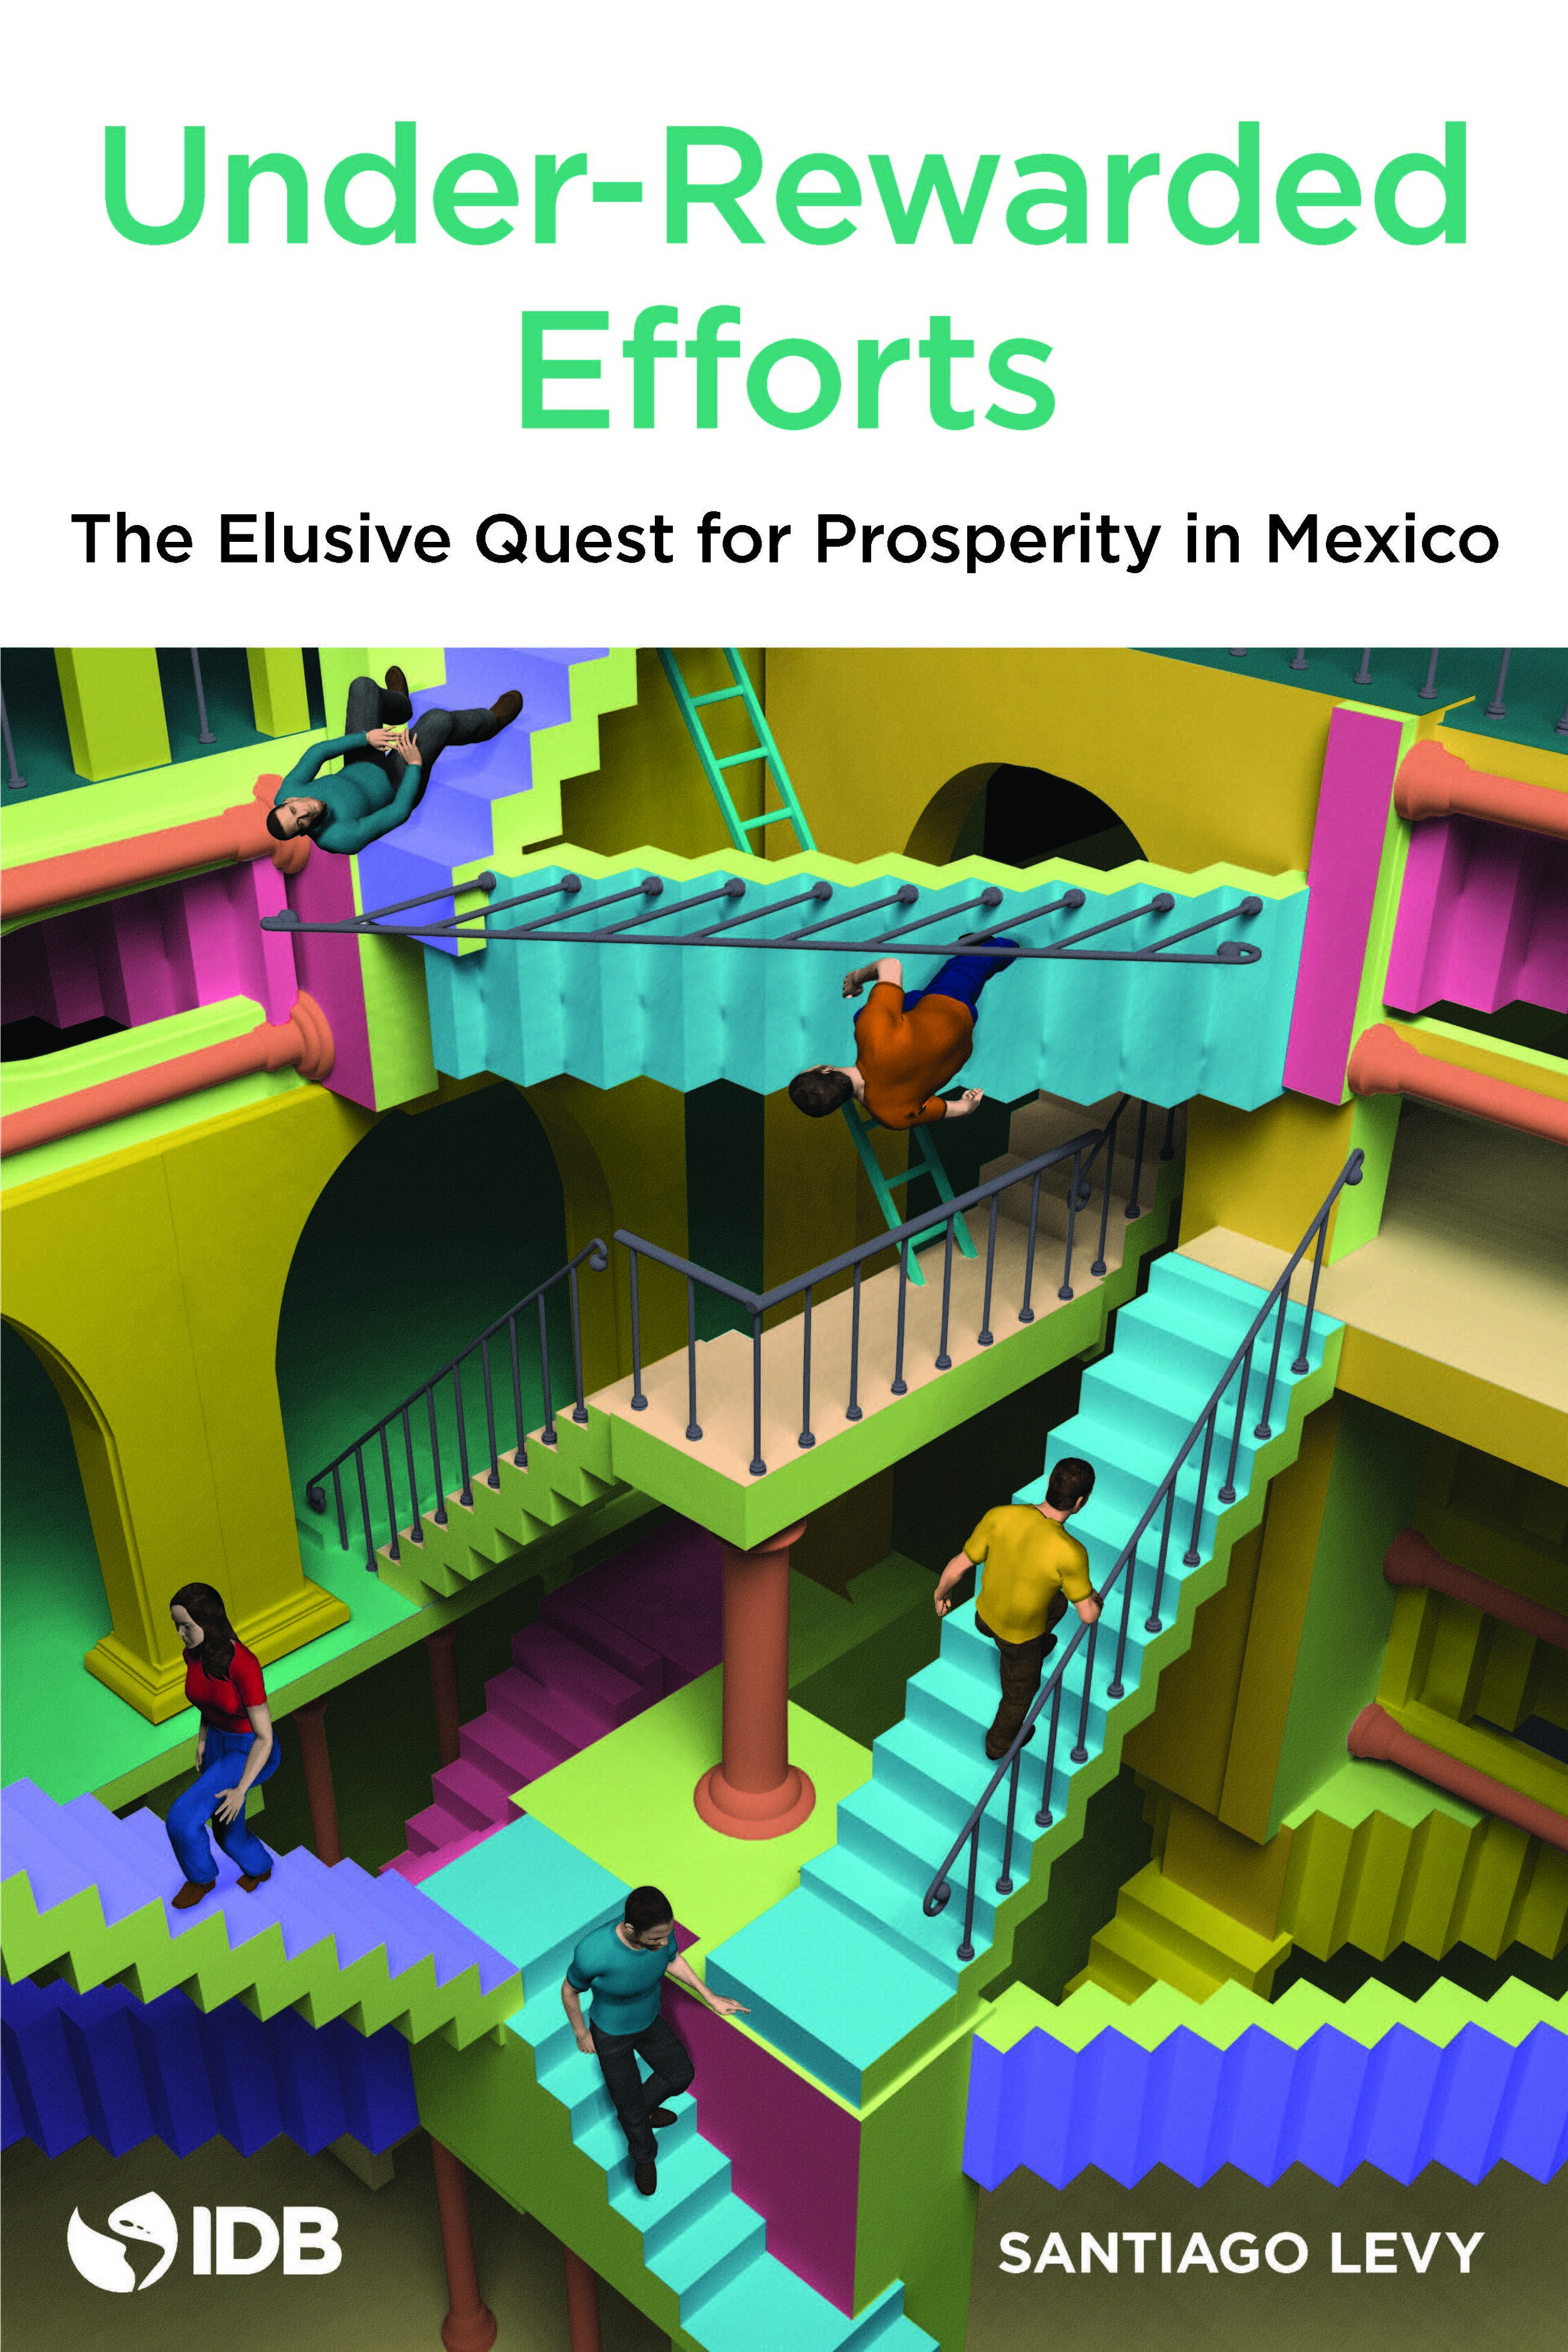 Under-Rewarded-Efforts-The-EluQuest-for-Prosperity-in-Mexico 1.jpg